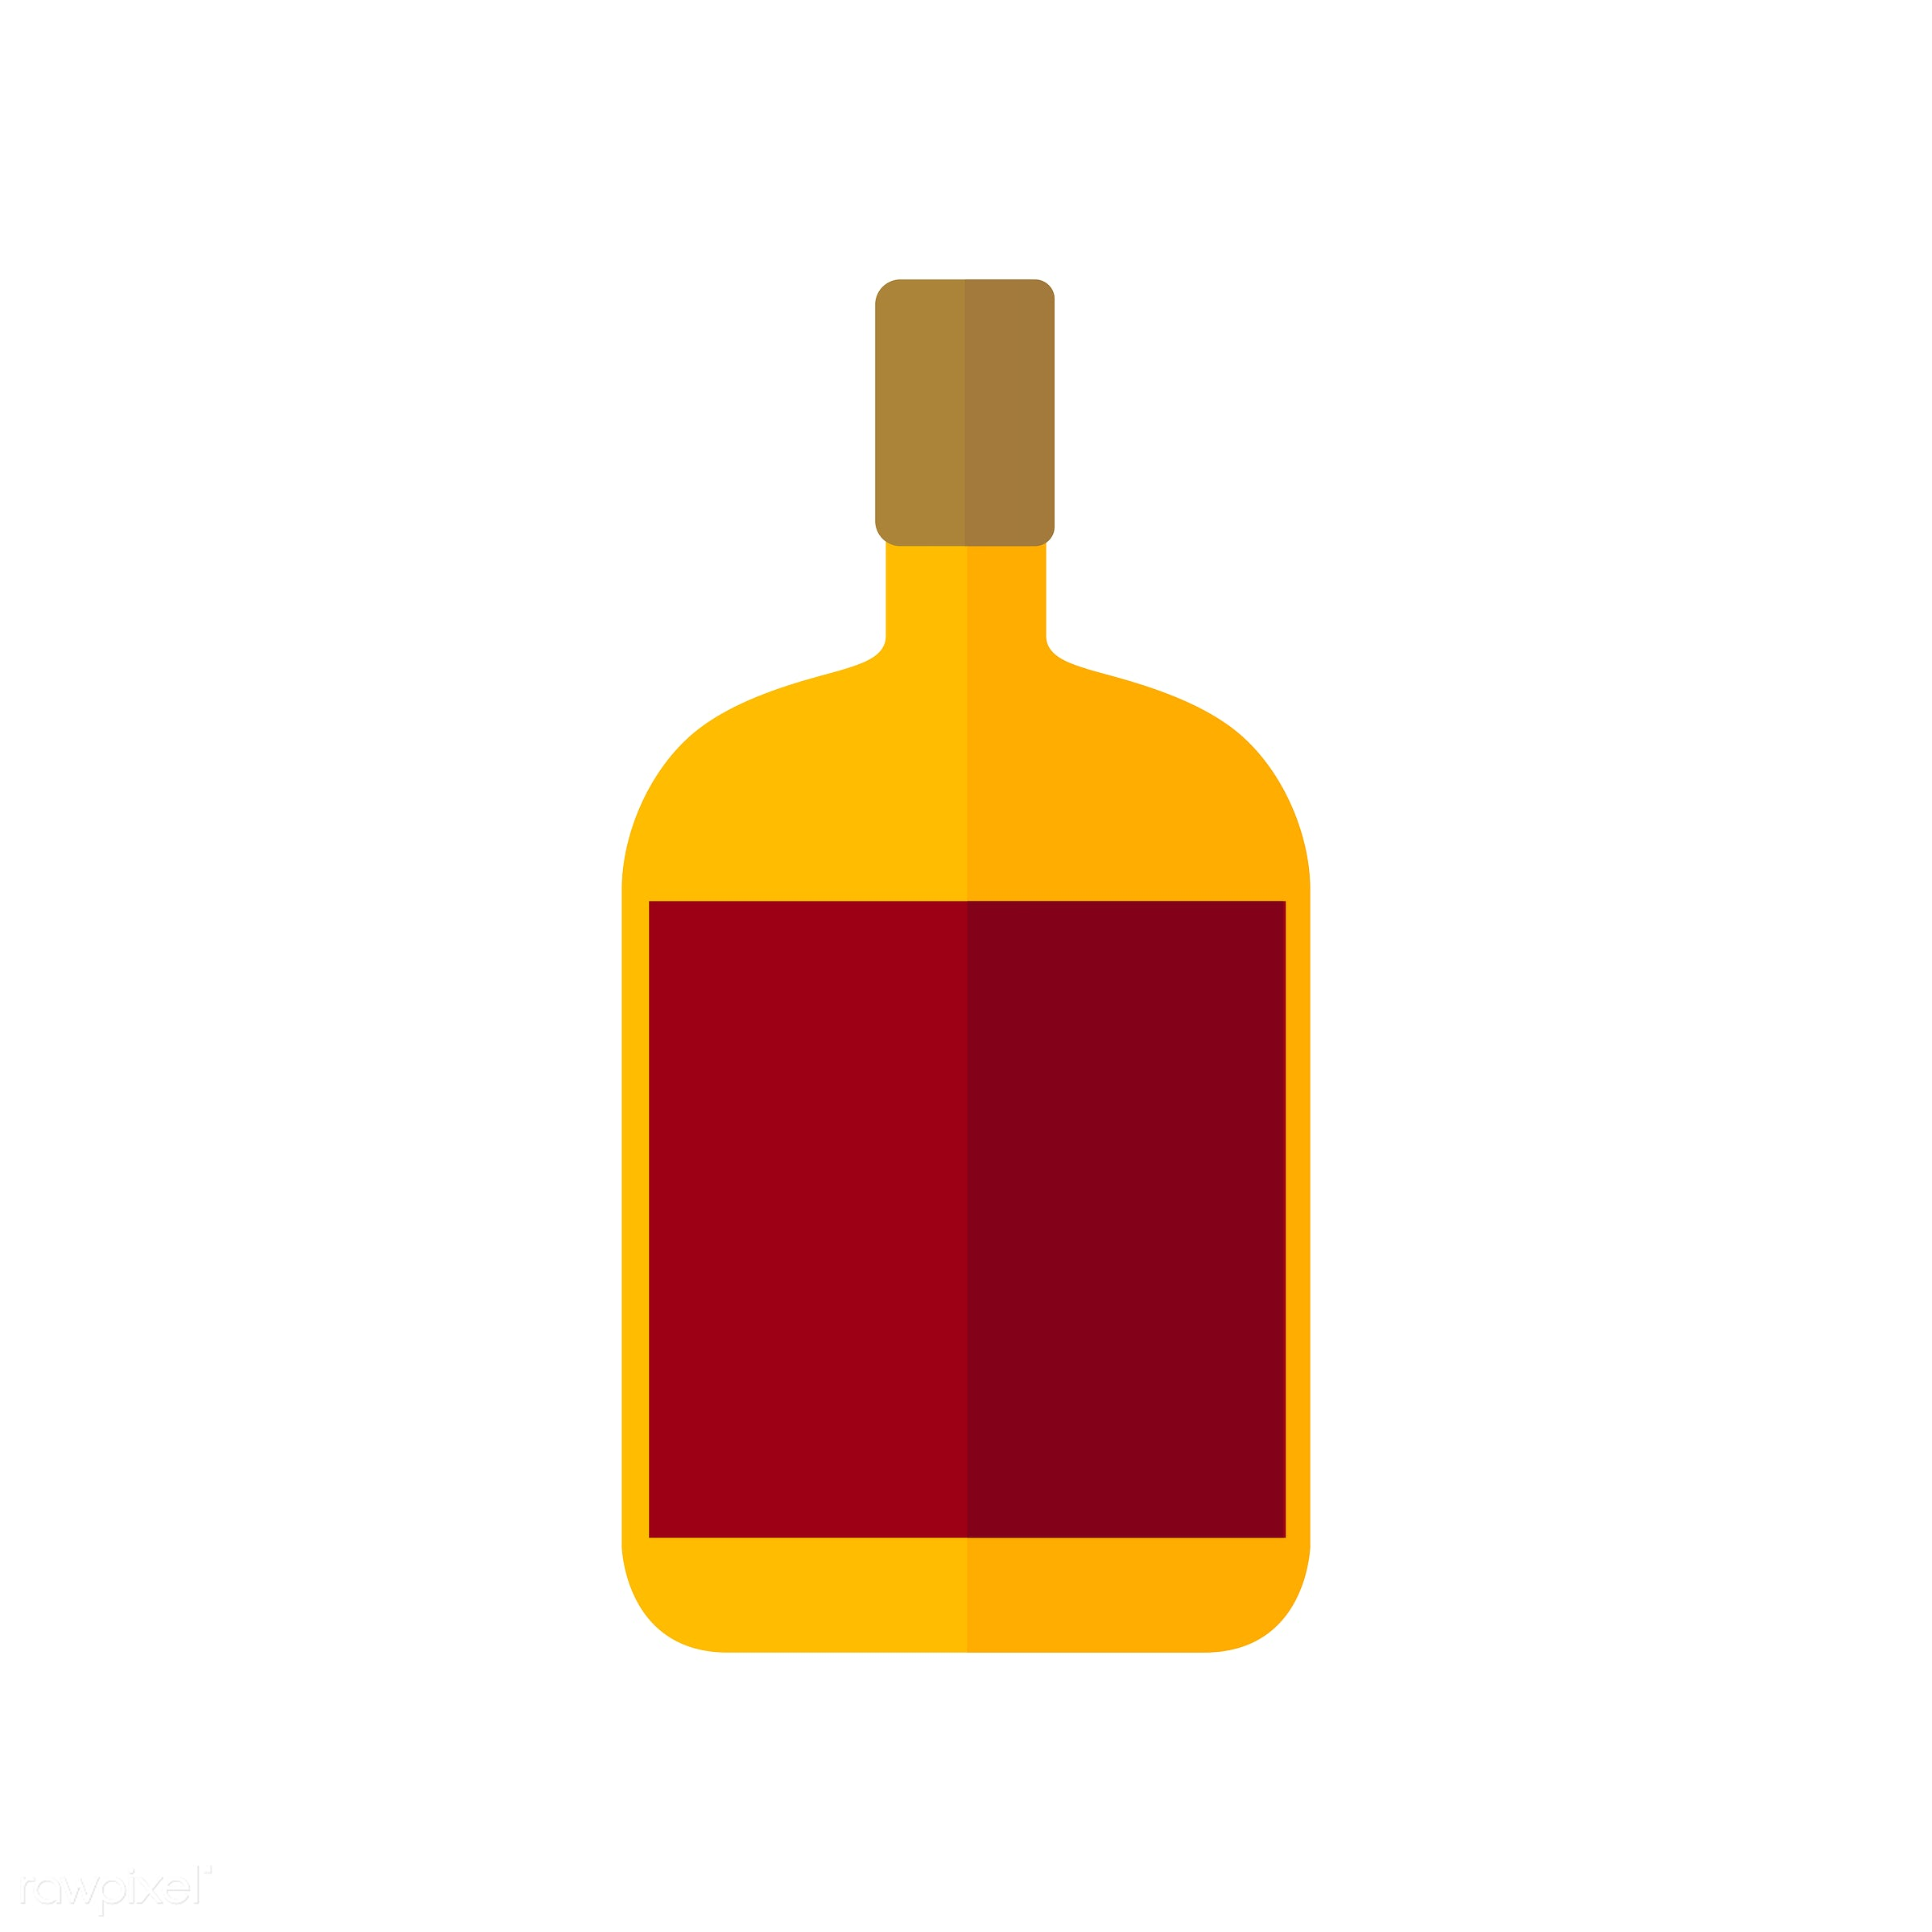 vector, graphic, illustration, icon, symbol, colorful, cute, drink, beverage, water, orange, glass bottle, red, cognac